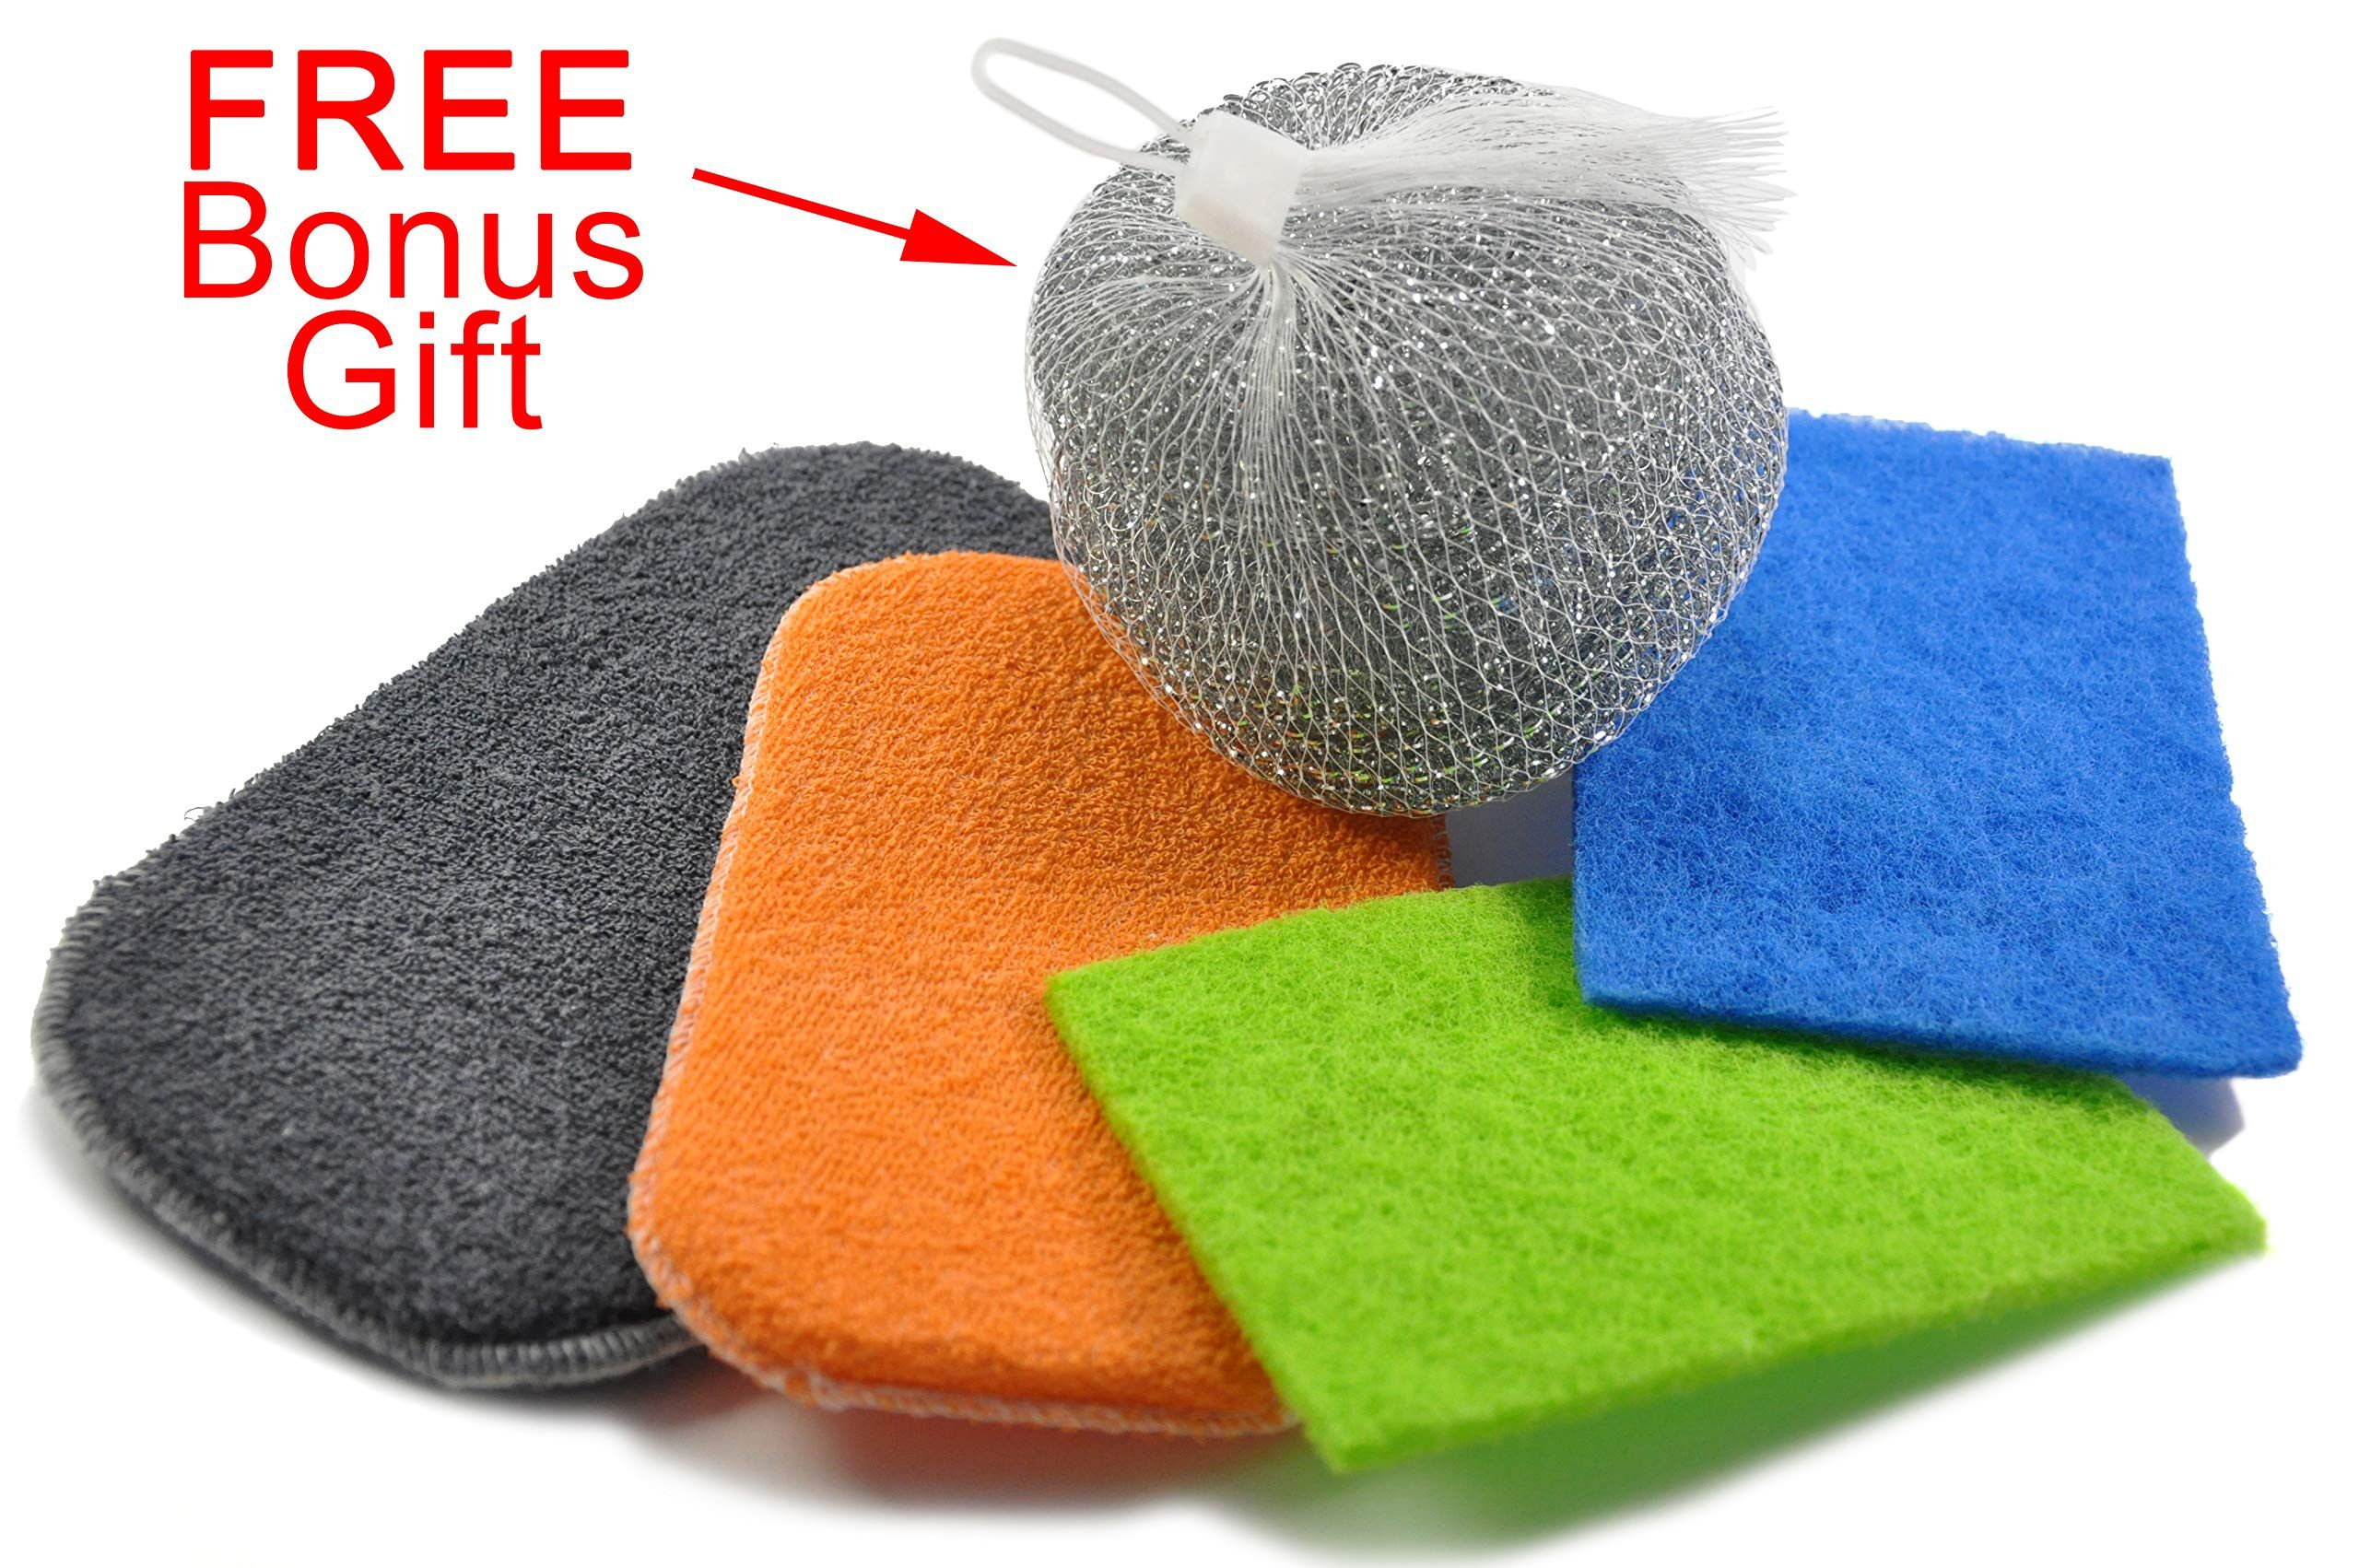 603198 4 Colored Soft Sponges For Kitchen And Bathroom Color Random Scouring Pads Cleaning Abrasive Sponges General Purpose Sc Bathroom Color Scrubbers Scourer